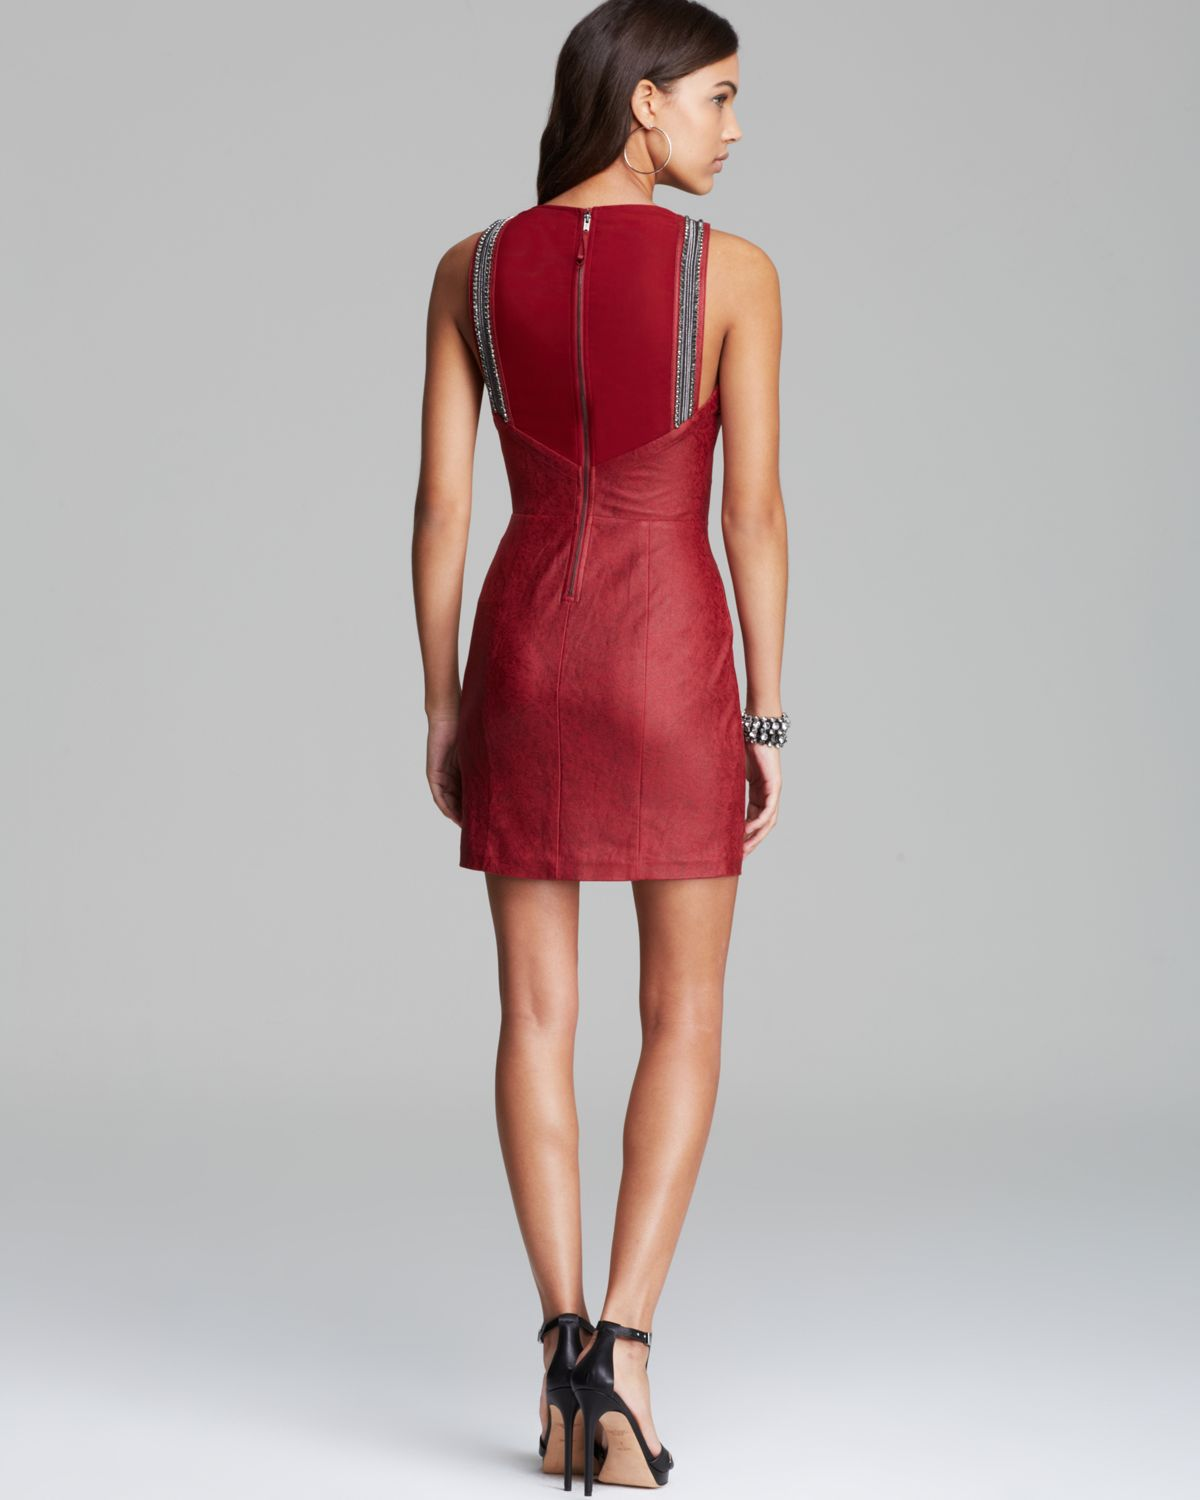 Red dress guess clothing